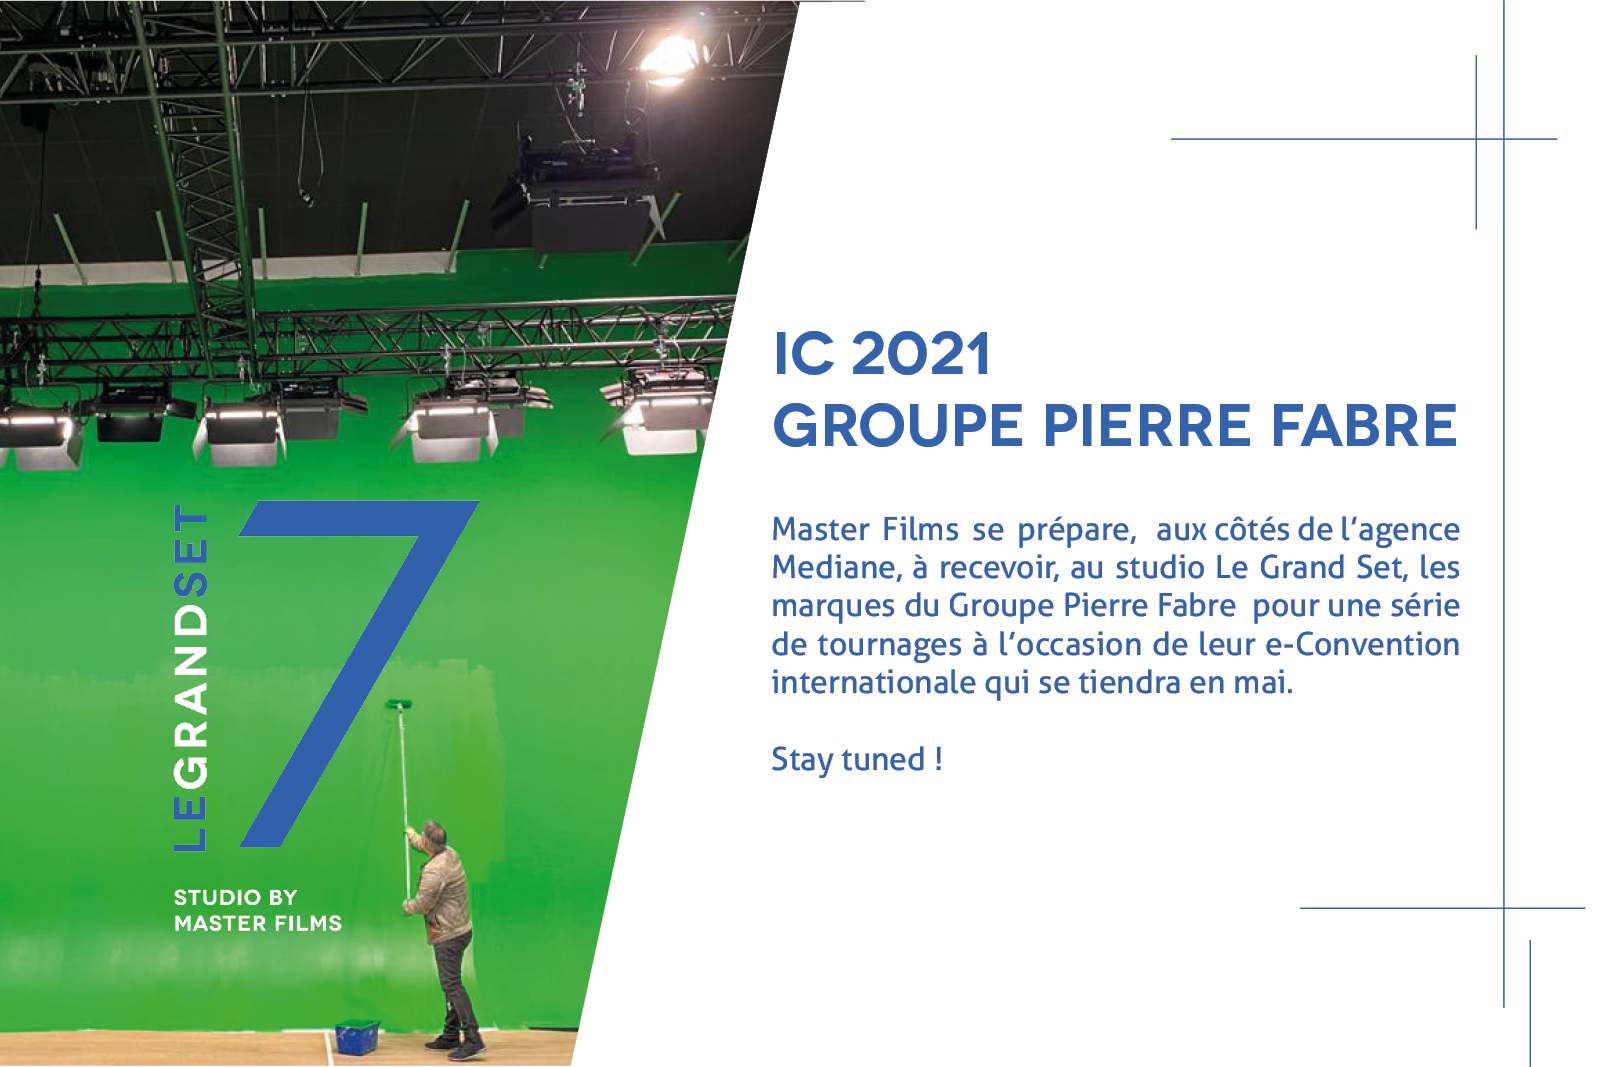 IC 2021 - Groupe Pierre Fabre